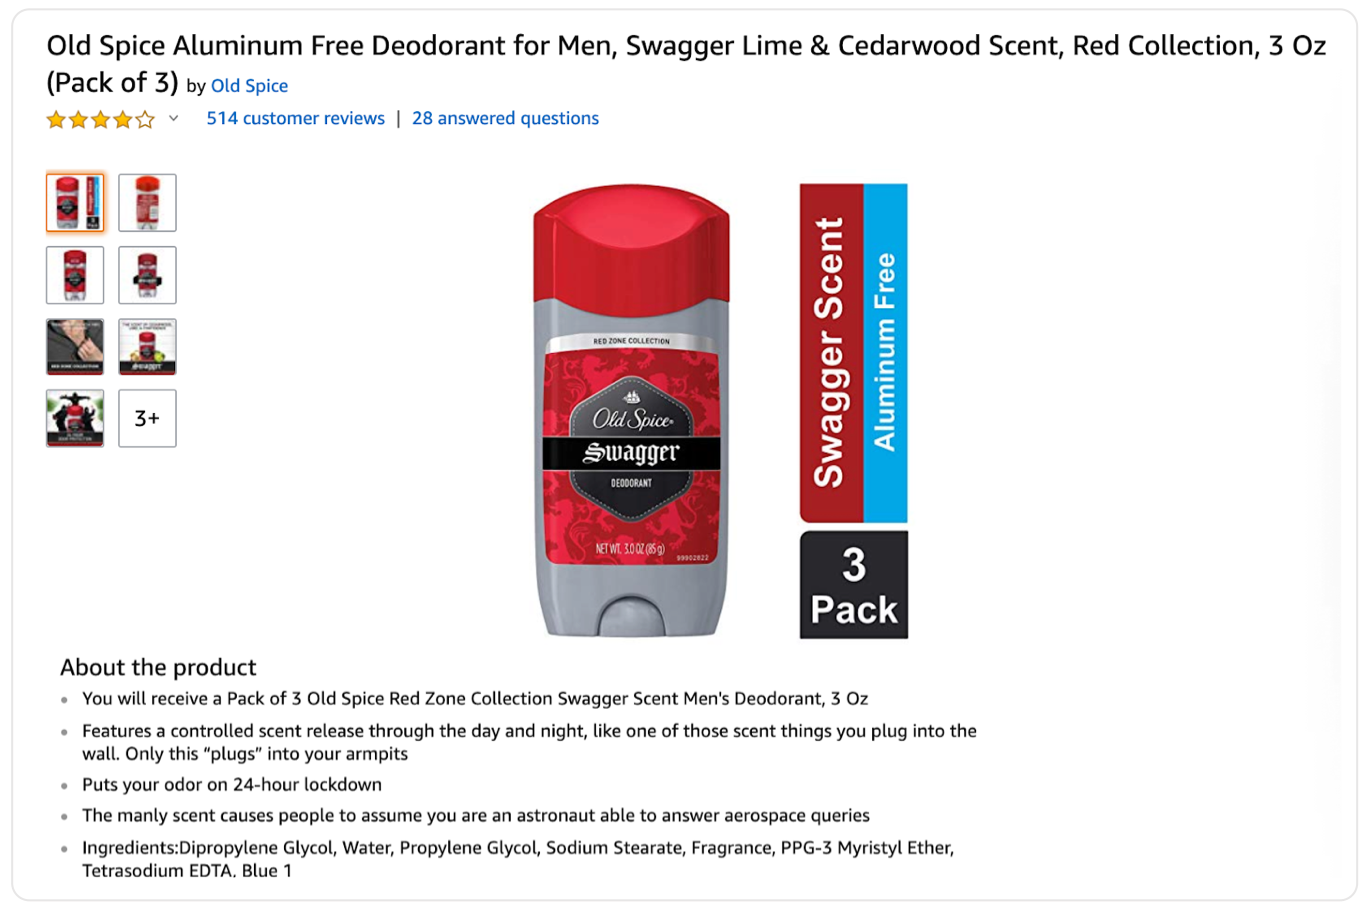 example of a multipack by old spice